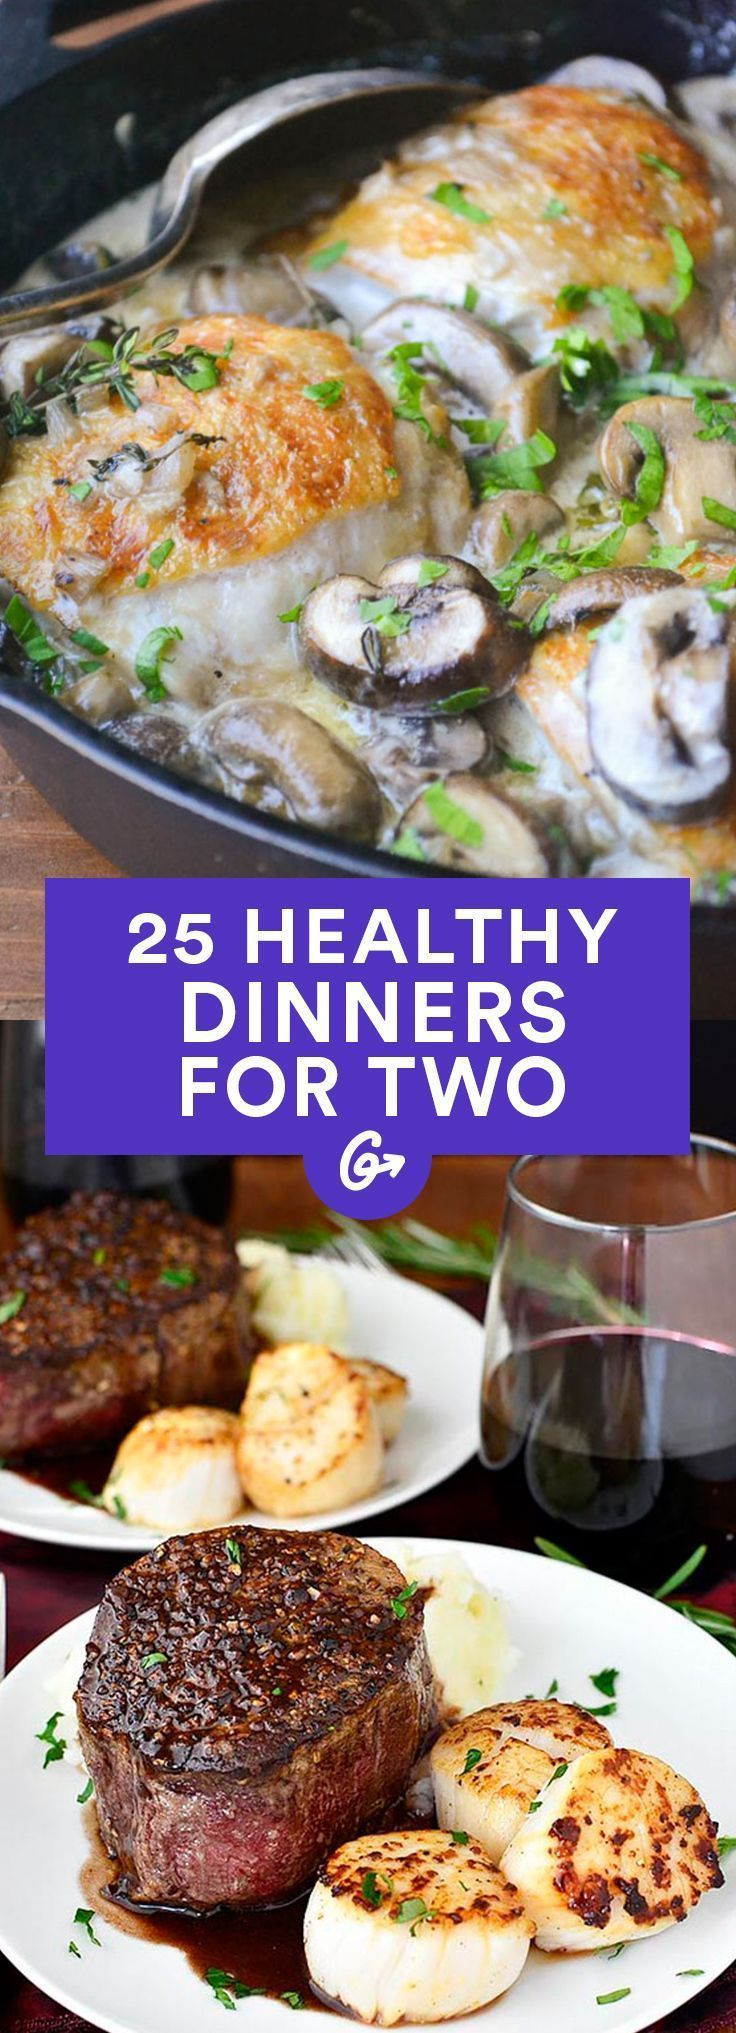 Healthy Simple Dinners For Two  100 Healthy Dinner Recipes on Pinterest